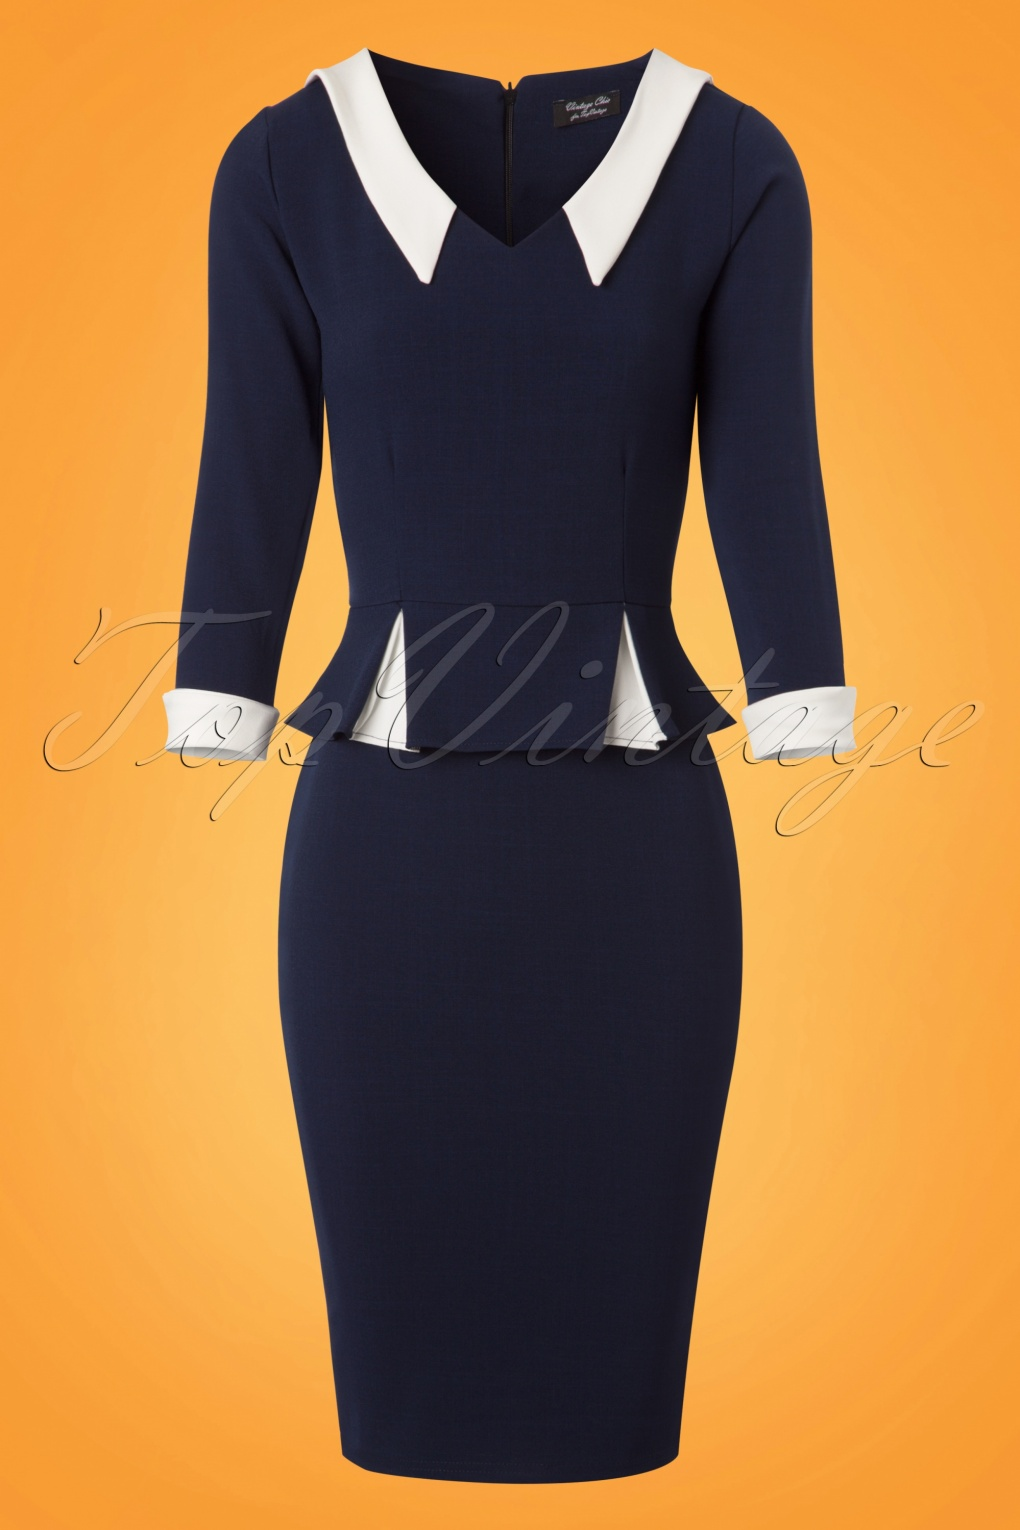 60s Plus Size Retro Dresses, Clothing, Costumes | 70s Dresses 50s Gladys Peplum Pencil Dress in Navy and Ivory £61.73 AT vintagedancer.com